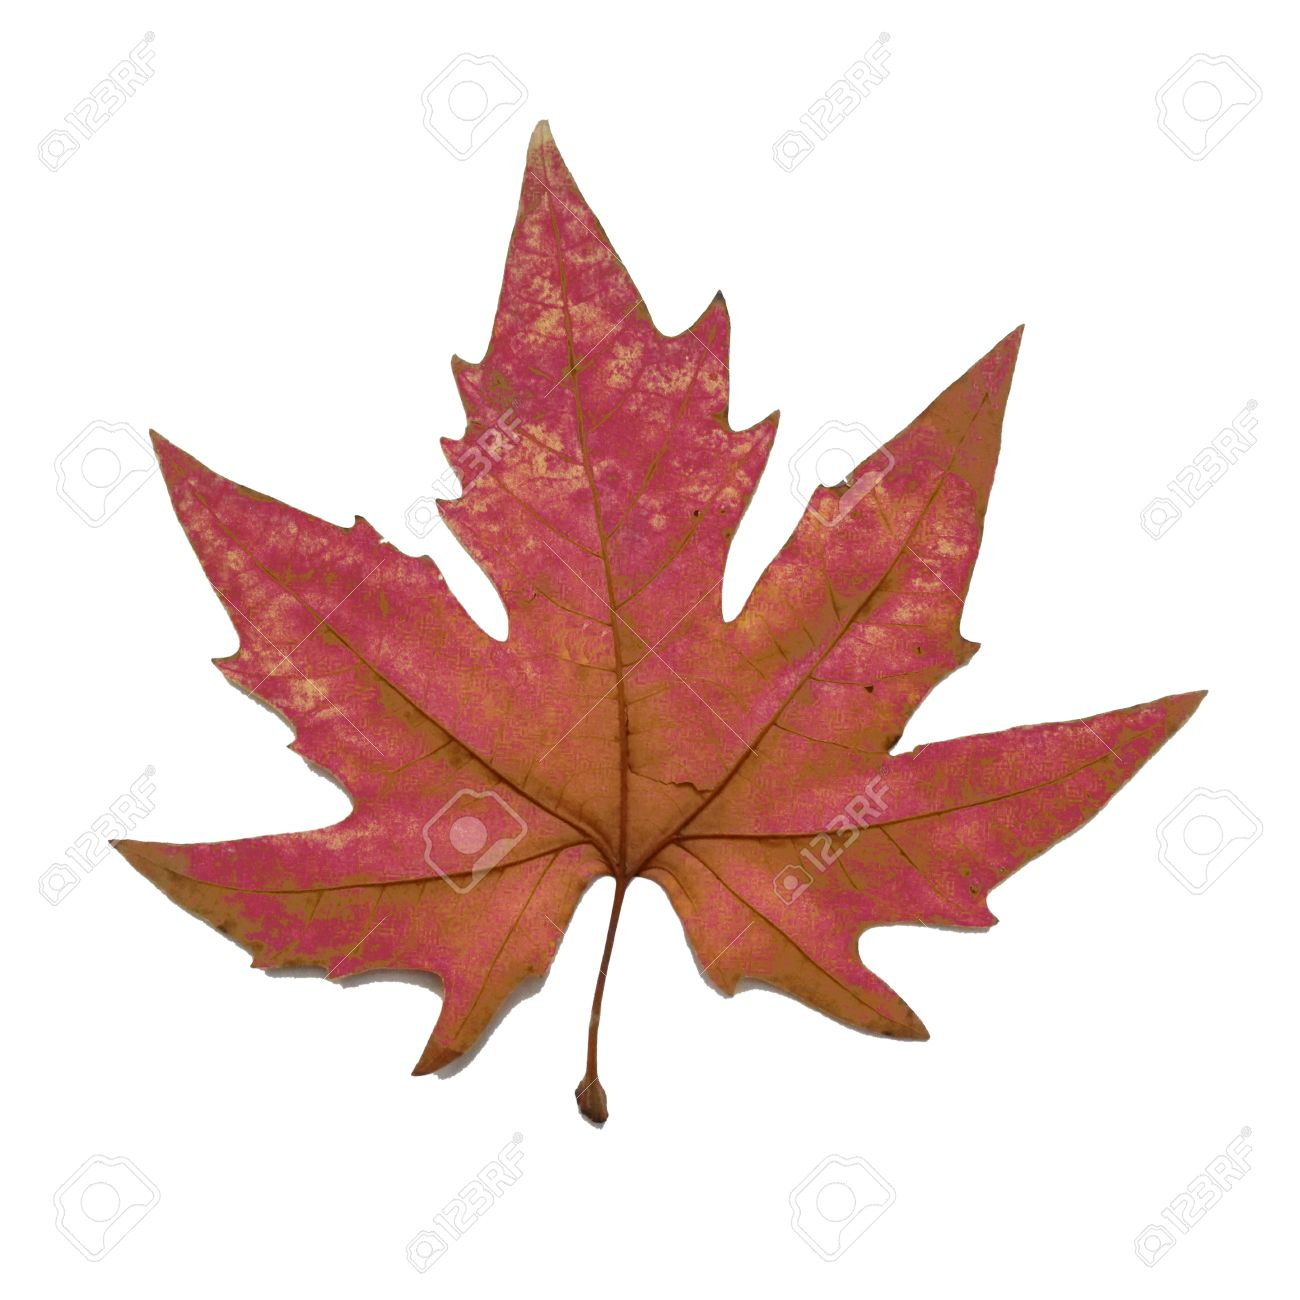 red autumn leaf chinar fall leaf stock photo picture and royalty